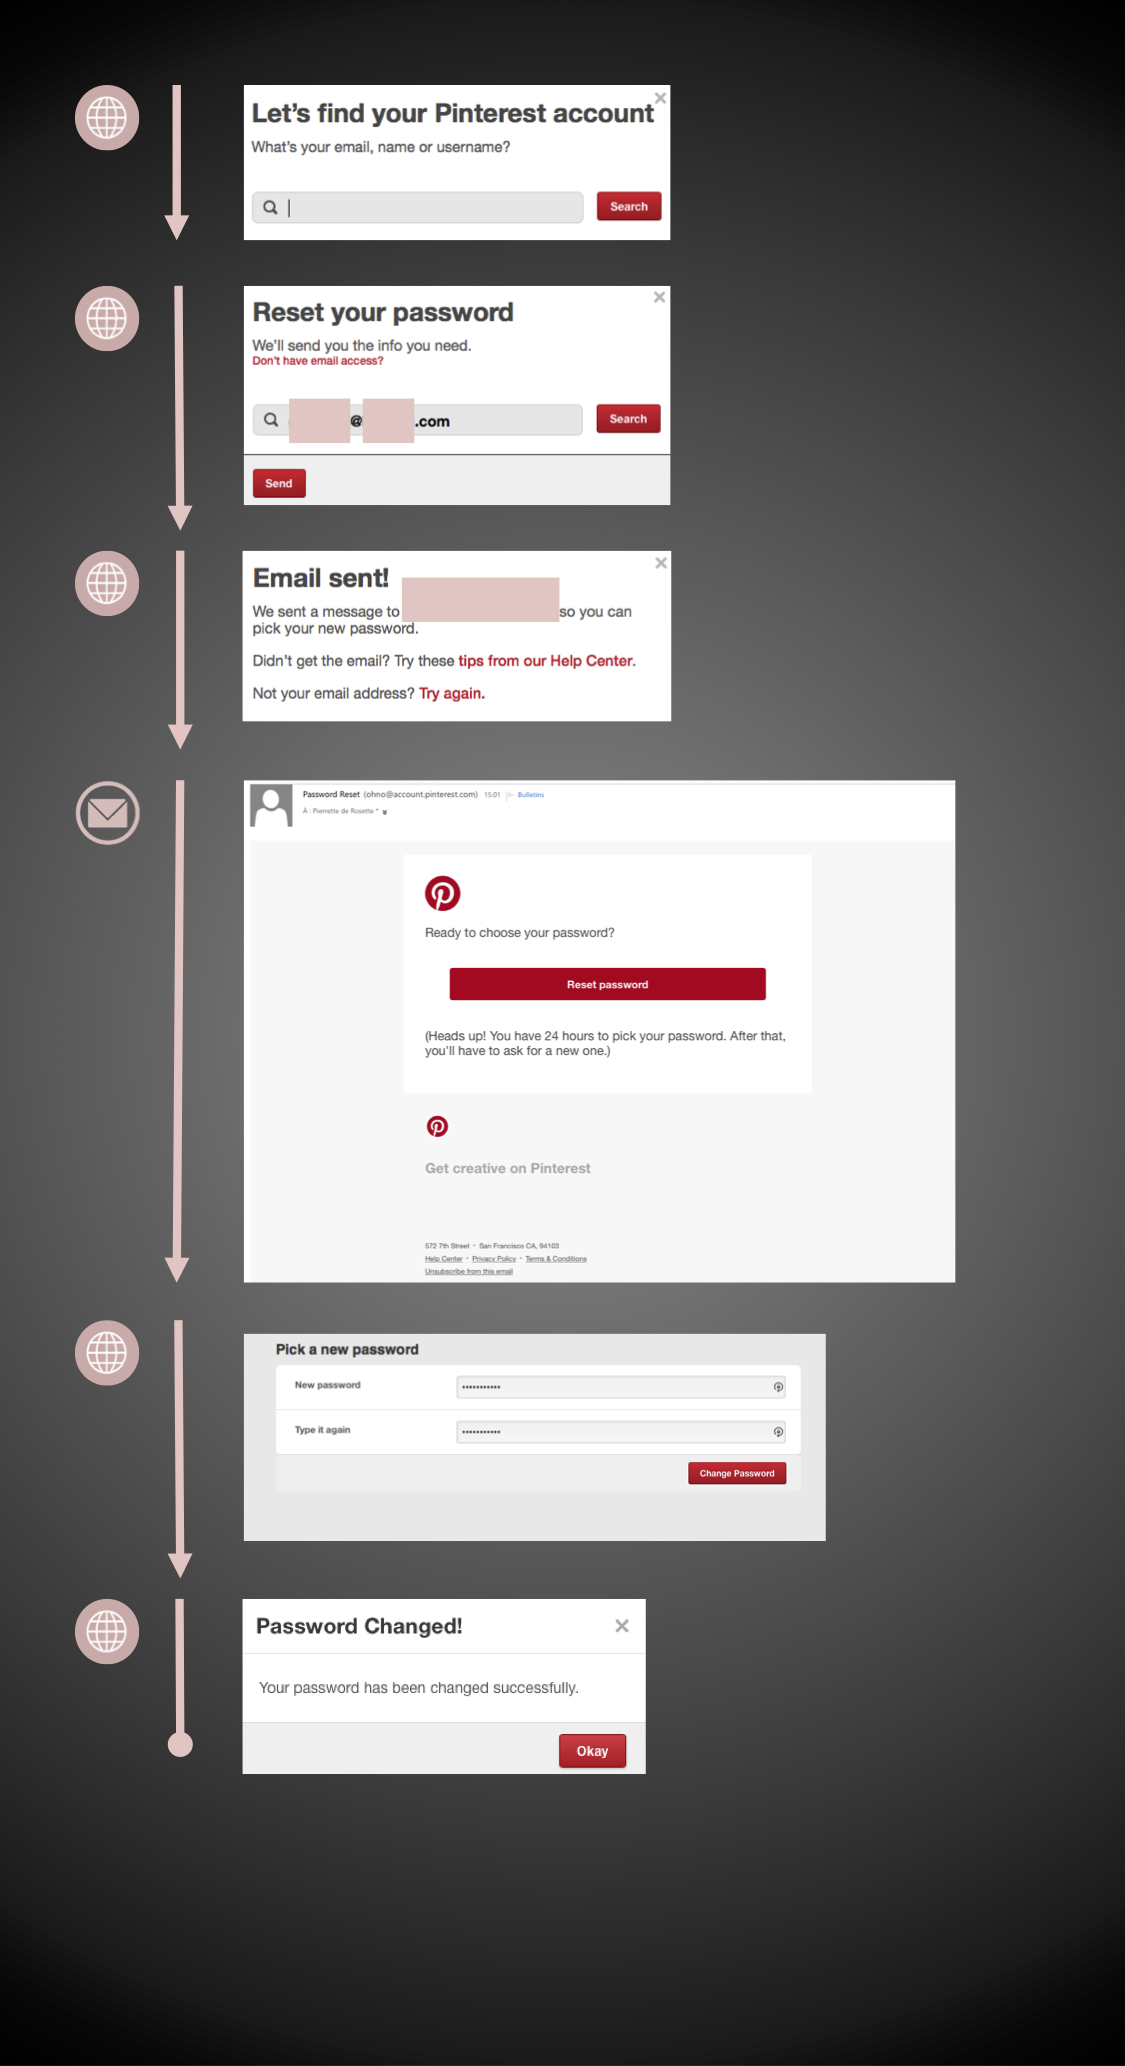 pinterest forgot password flow with user search feature and reset